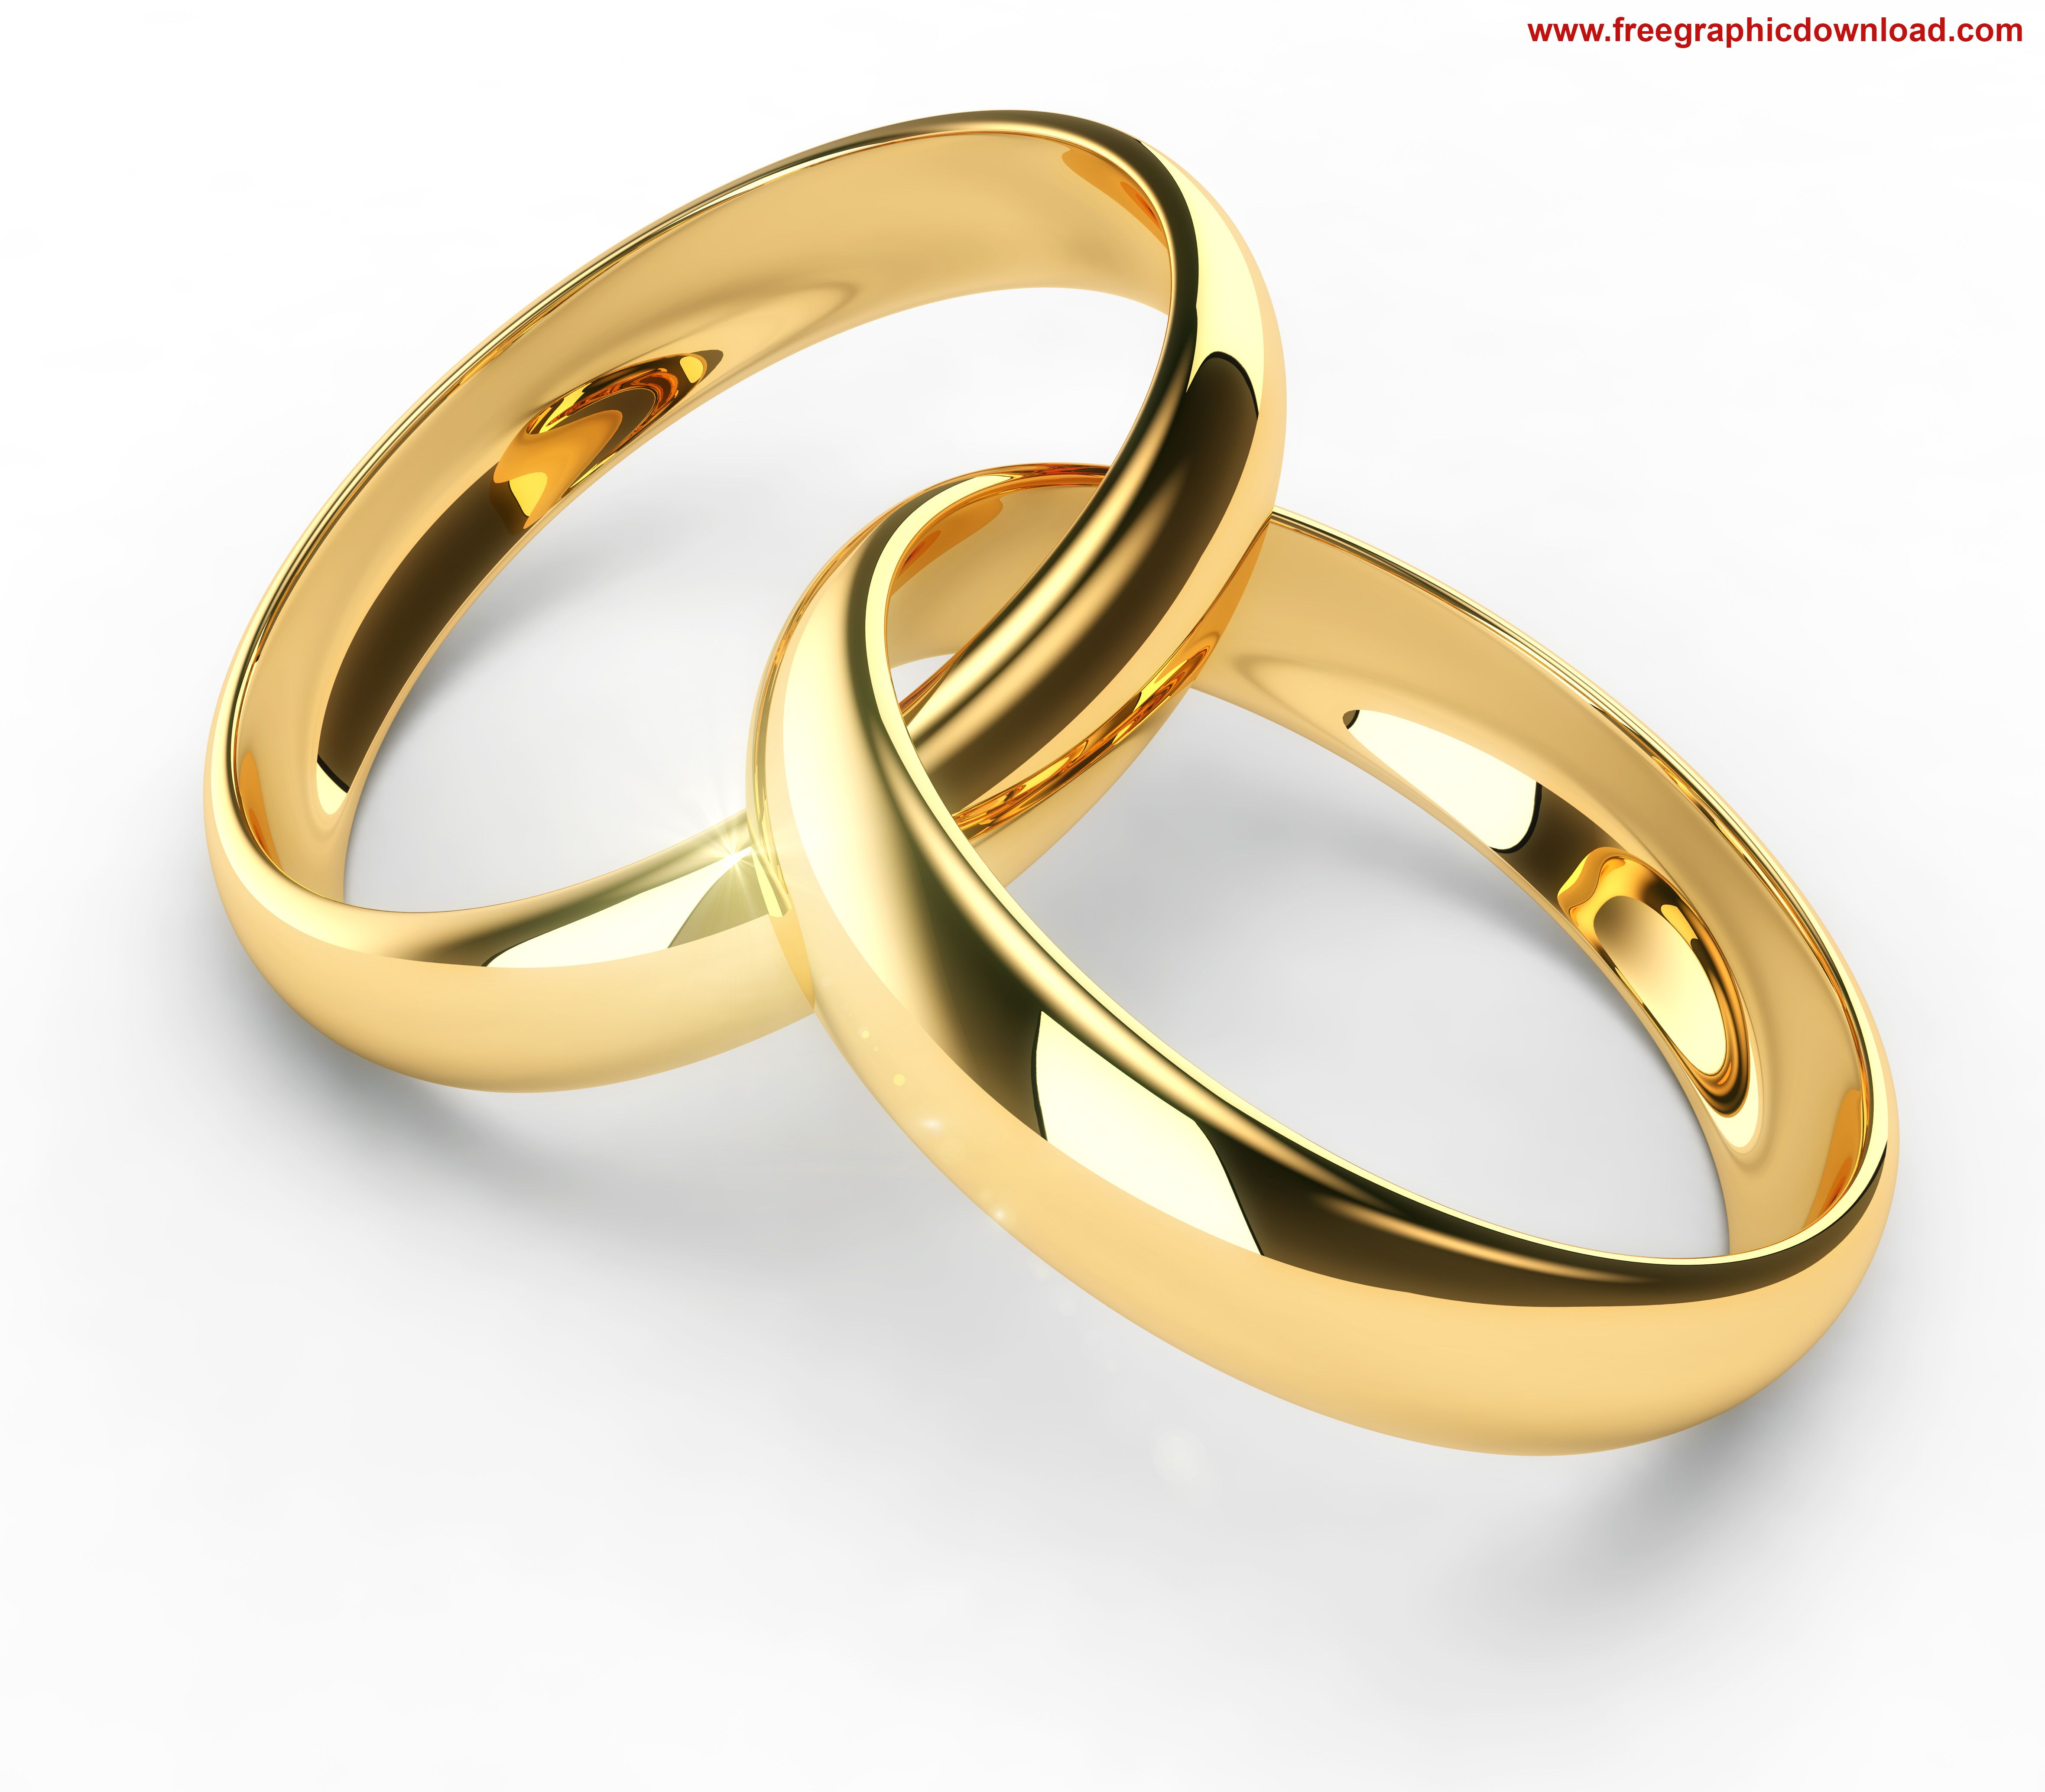 couples wedding bands Gold wedding rings